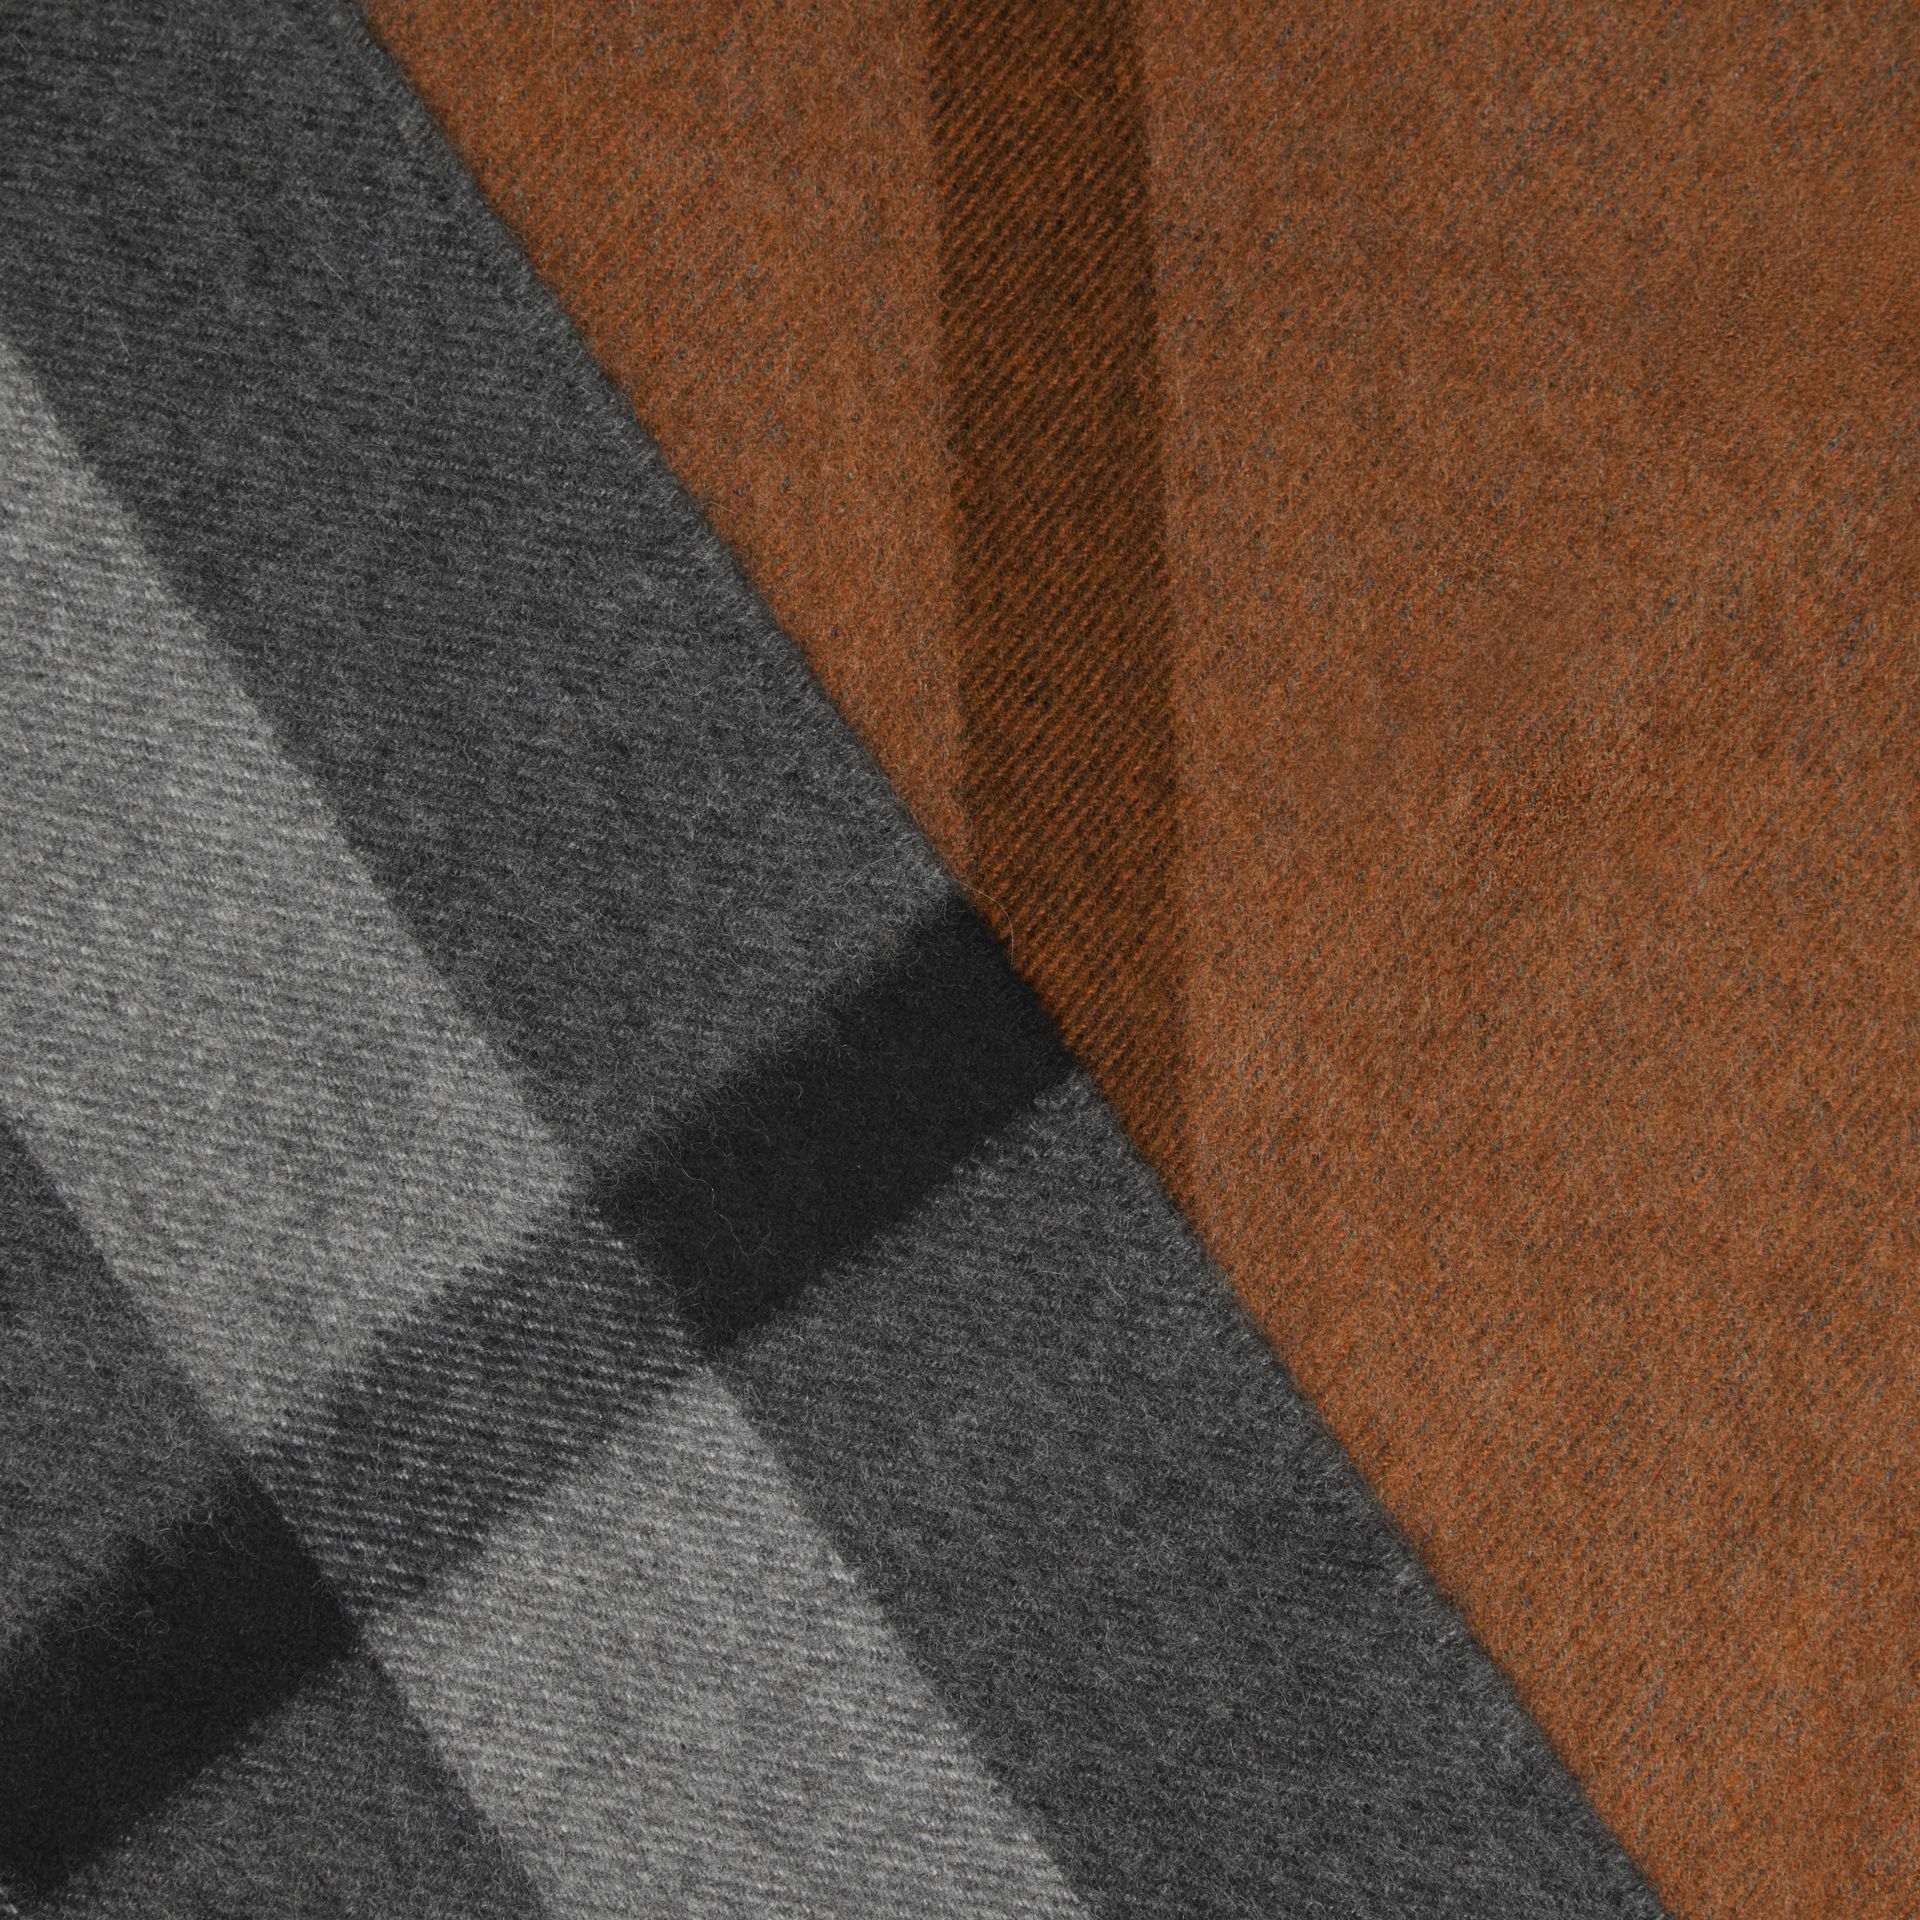 Colour Block Check Cashmere Scarf in Toffee | Burberry - gallery image 1